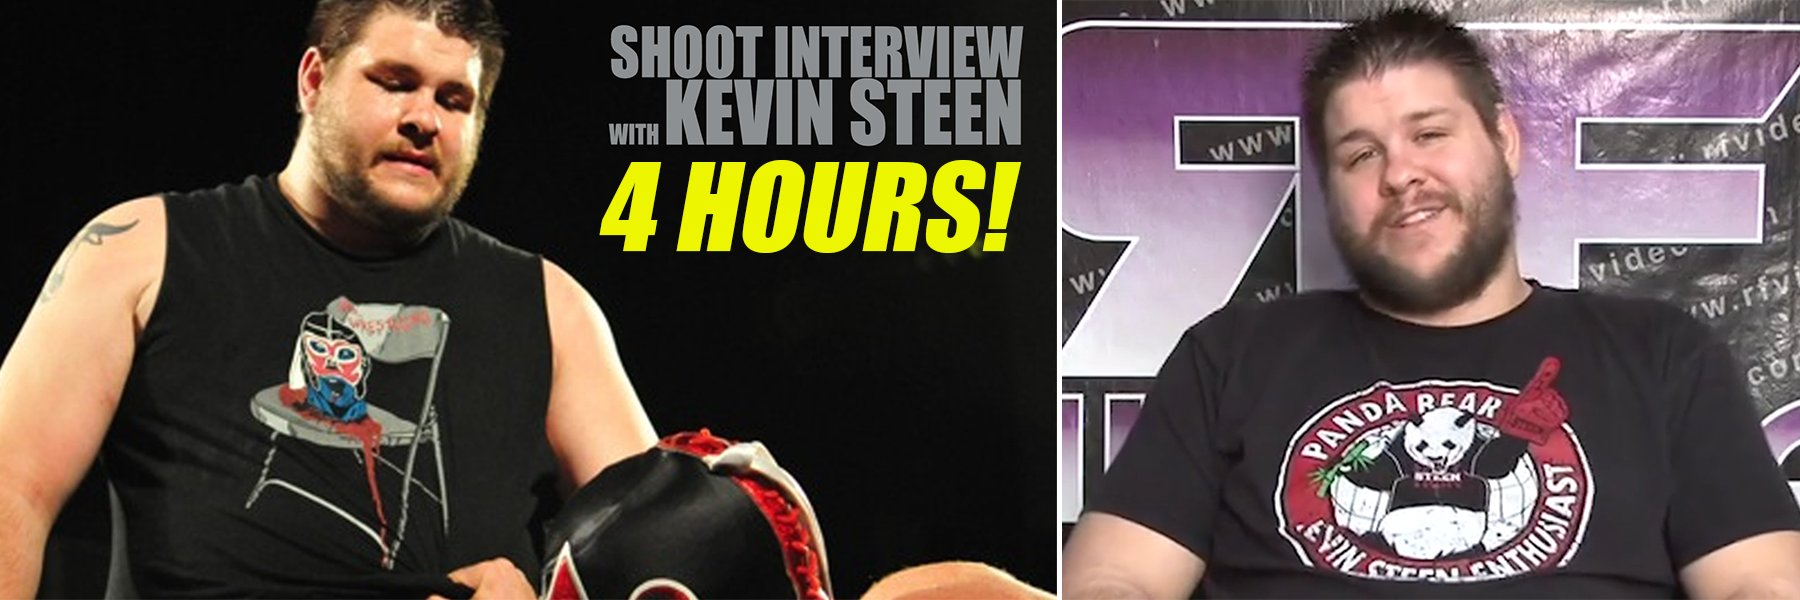 Watch the Complete Kevin Steen Shoot Interview - 4 Hours Long!